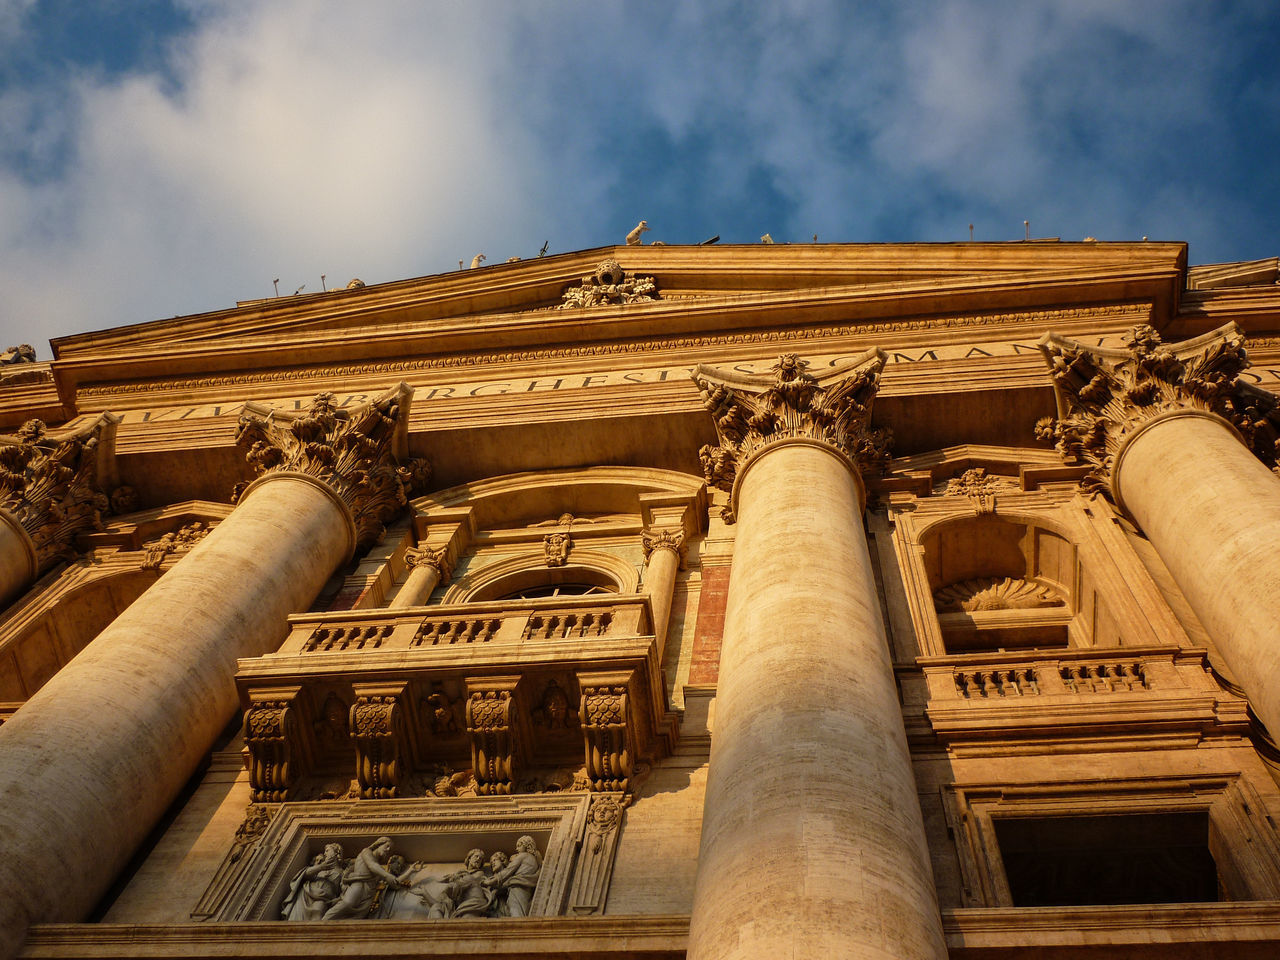 Rom Architectural Column Architecture Building Exterior Built Structure City Cloud - Sky Day History Low Angle View No People Outdoors Sculpture Sky Statue Tourism Travel Destinations